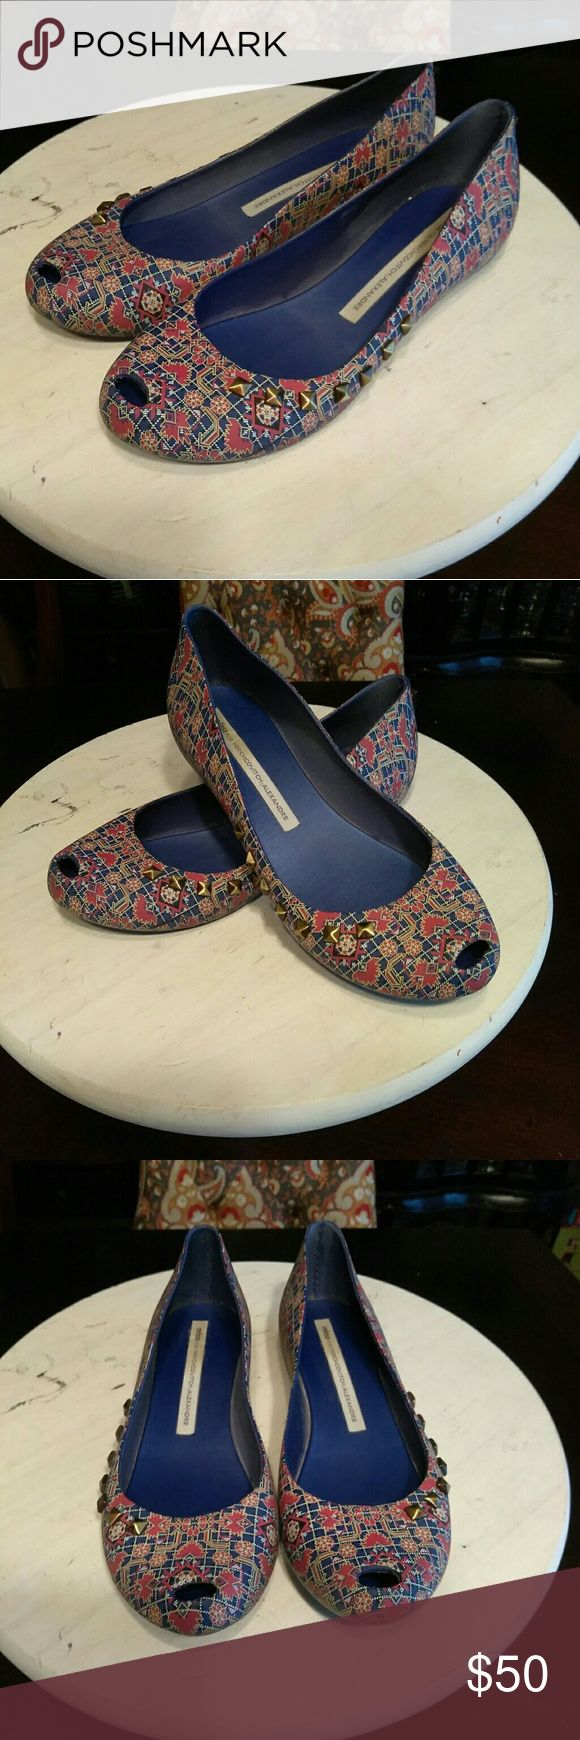 4:20 SALE!!! Melissa Por Herchovitch-Print Flats SALE WILL END AT 4:20PM TOMORROW!!!😀😎  Tis' the Season!!! Definitely should bring in the Season with these Melissa Por Herchovitch;Alexandre Rubber Flat!!! Talk about WATERPROOF!!! Purple/Pink/White Pattern w/Studs, and a Lil' Peep-Toe action!!! (Whew that's a combo)!! Great condition inside and out, with all Studs intact 😀Great shoe, great brand, and great price 😉! Let's make some offers Ladies!!!👠😎😍 Melissa Shoes Flats & Loafers